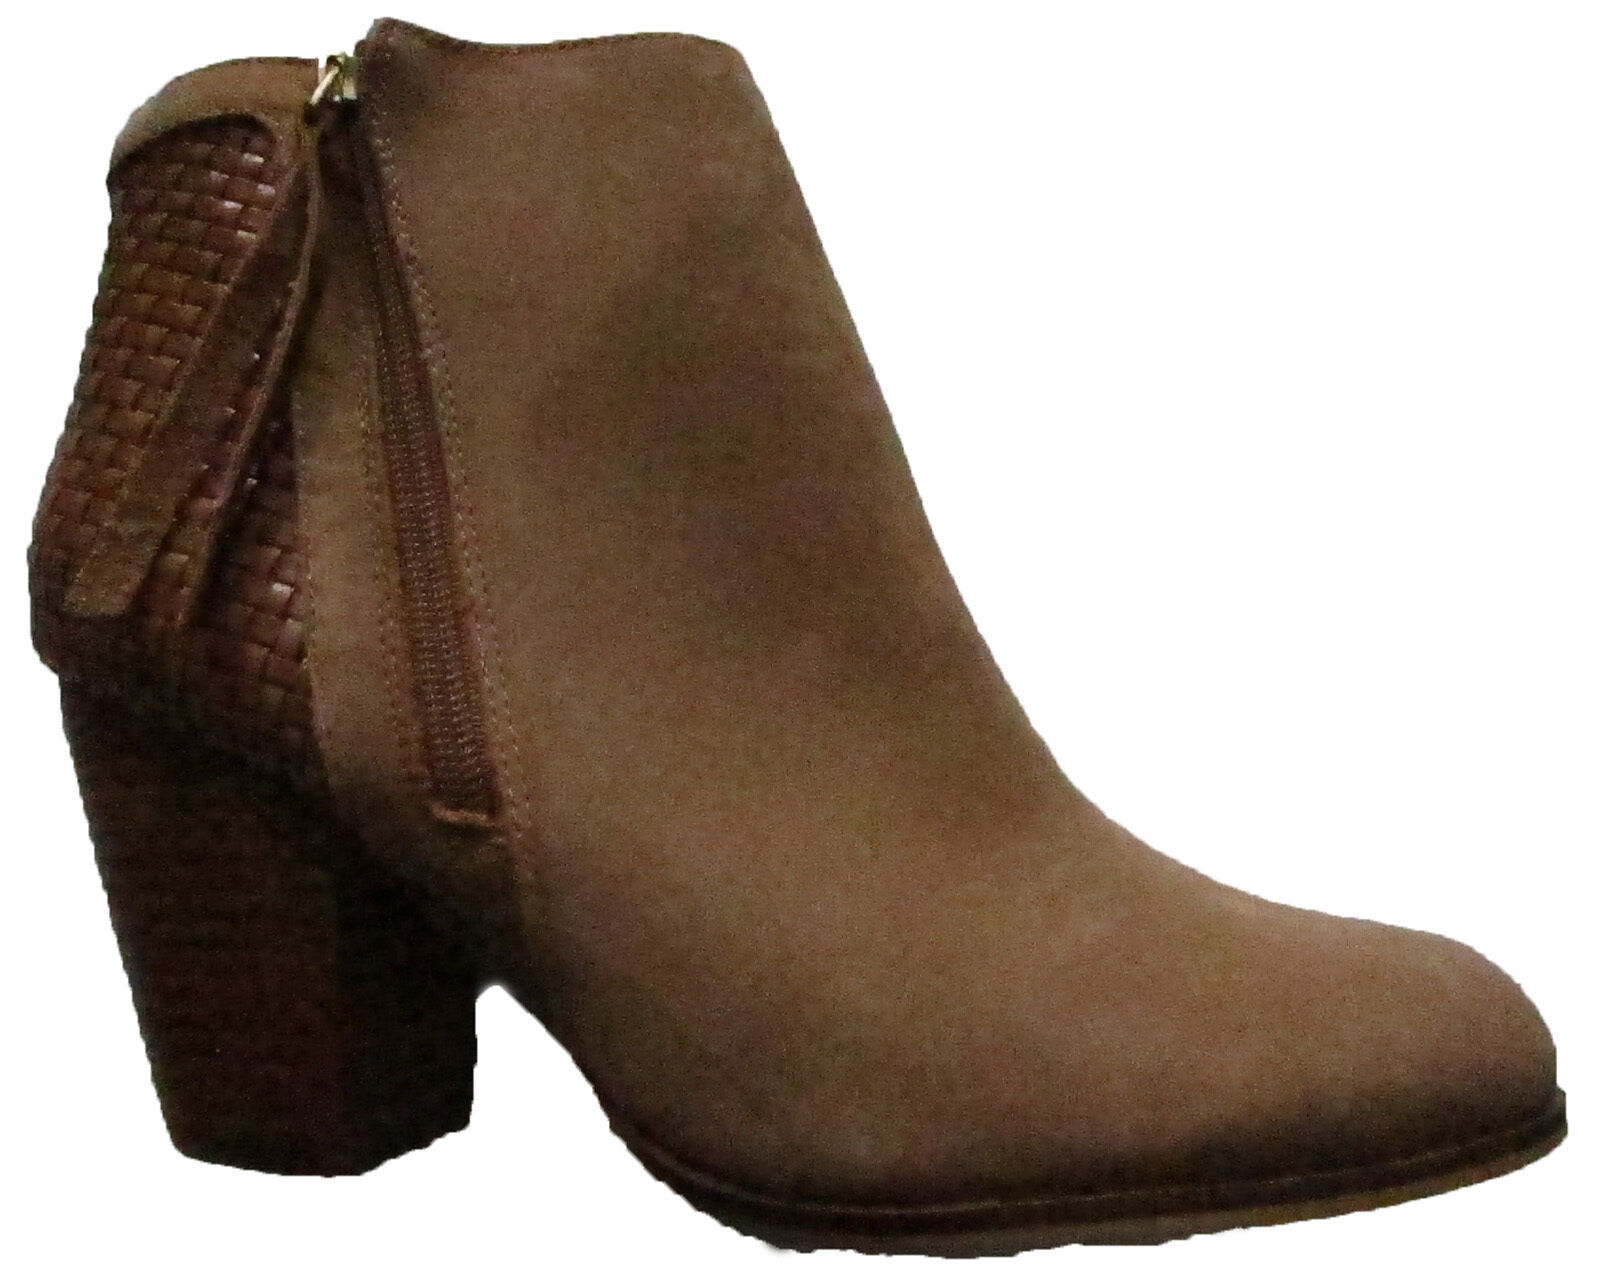 New Womens Light Brown NEXT Boots Size 7